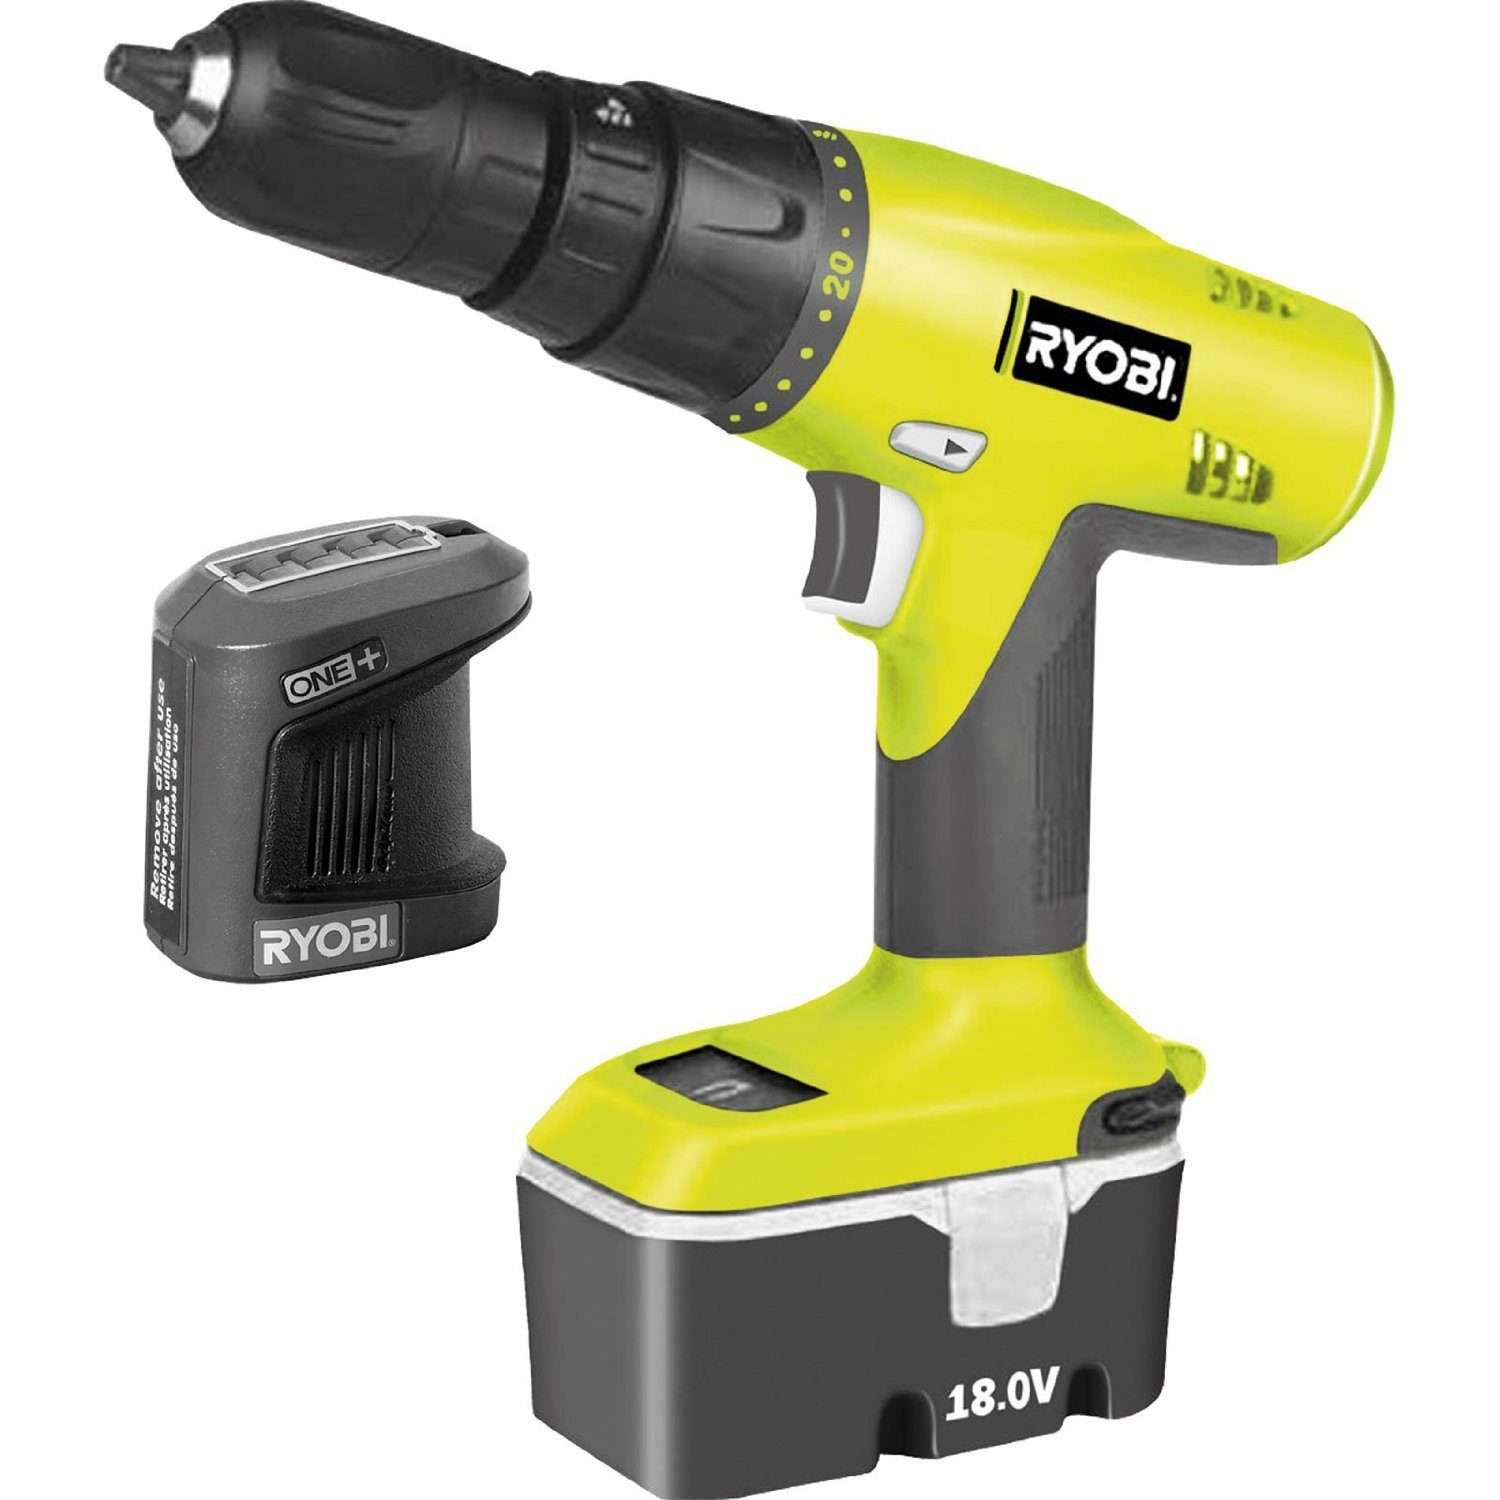 Ryobi CHI1802P ONE+ 18v Cordless 2 Speed Combi Drill with 1 NiCAD Battery 1.3ah